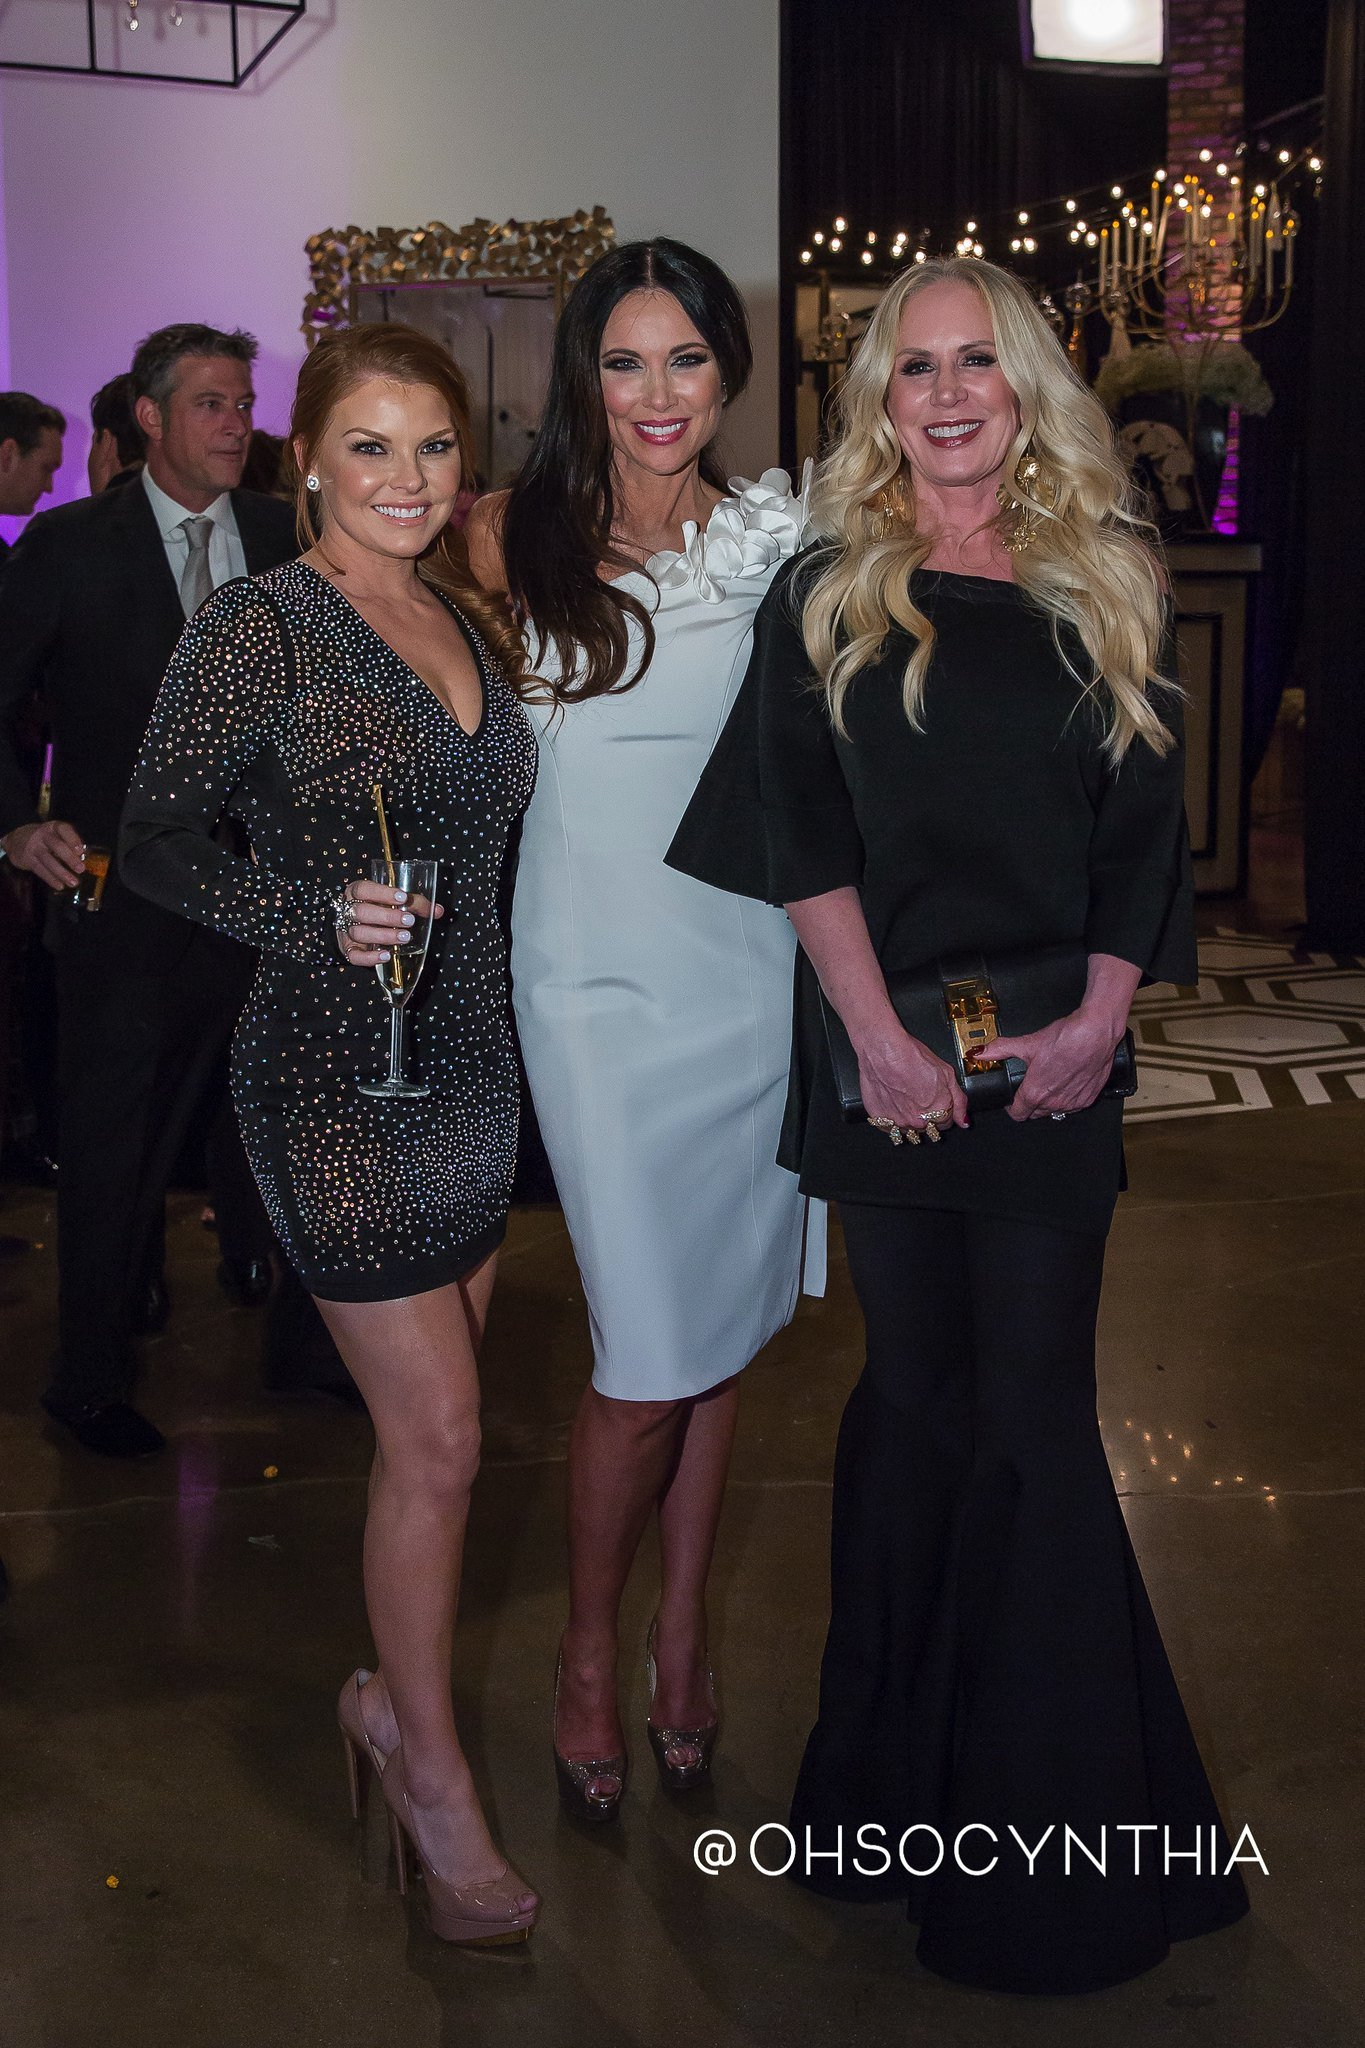 """Brandi Redmond, LeeAnne Locken, and Heidi Dillonat the Prashe showroom for an event thatwas filmed for season 2 of """"The Real Housewives of Dallas"""" on February 1, 2017 